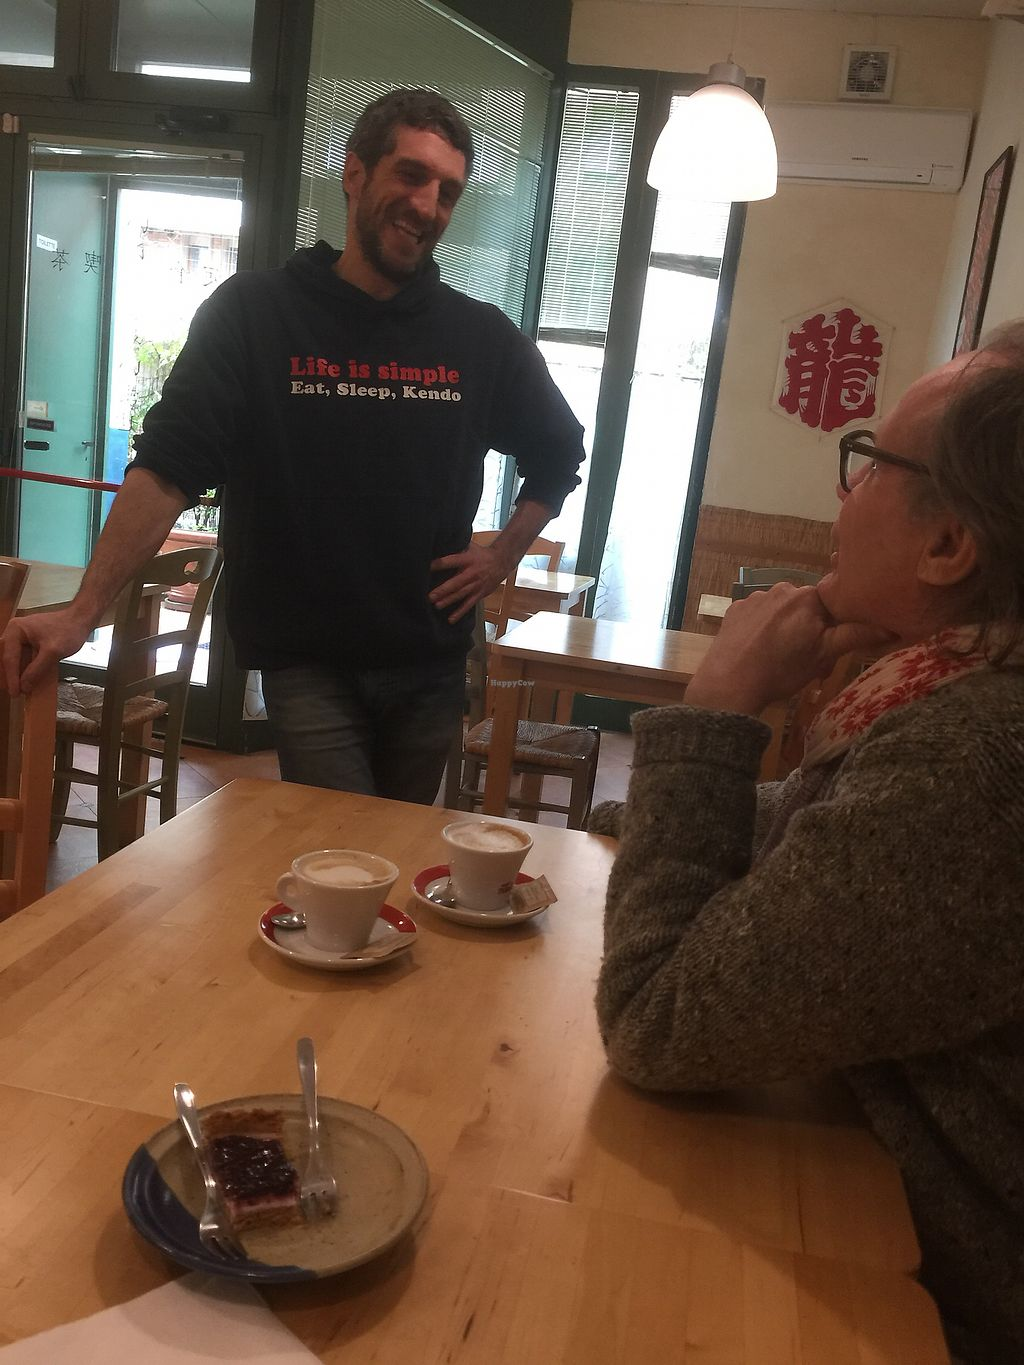 """Photo of TerraViva  by <a href=""""/members/profile/johannabernarda"""">johannabernarda</a> <br/>Good coffee with sou milk and very friendly owner! <br/> March 19, 2018  - <a href='/contact/abuse/image/54511/372834'>Report</a>"""